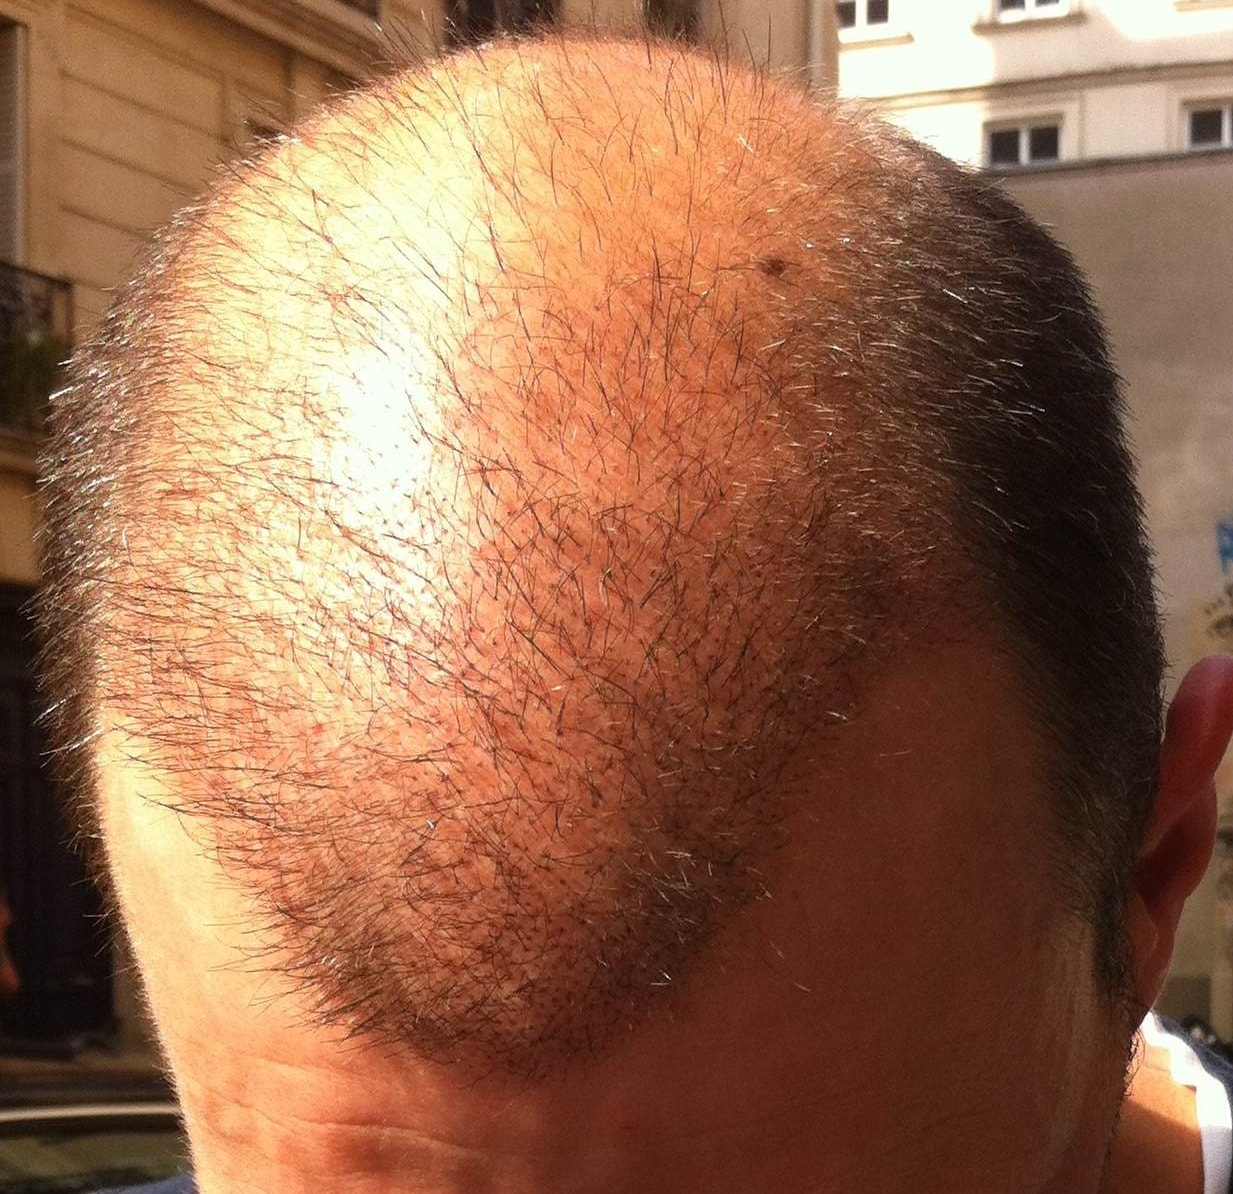 3 weeks after the hair transplant surgery